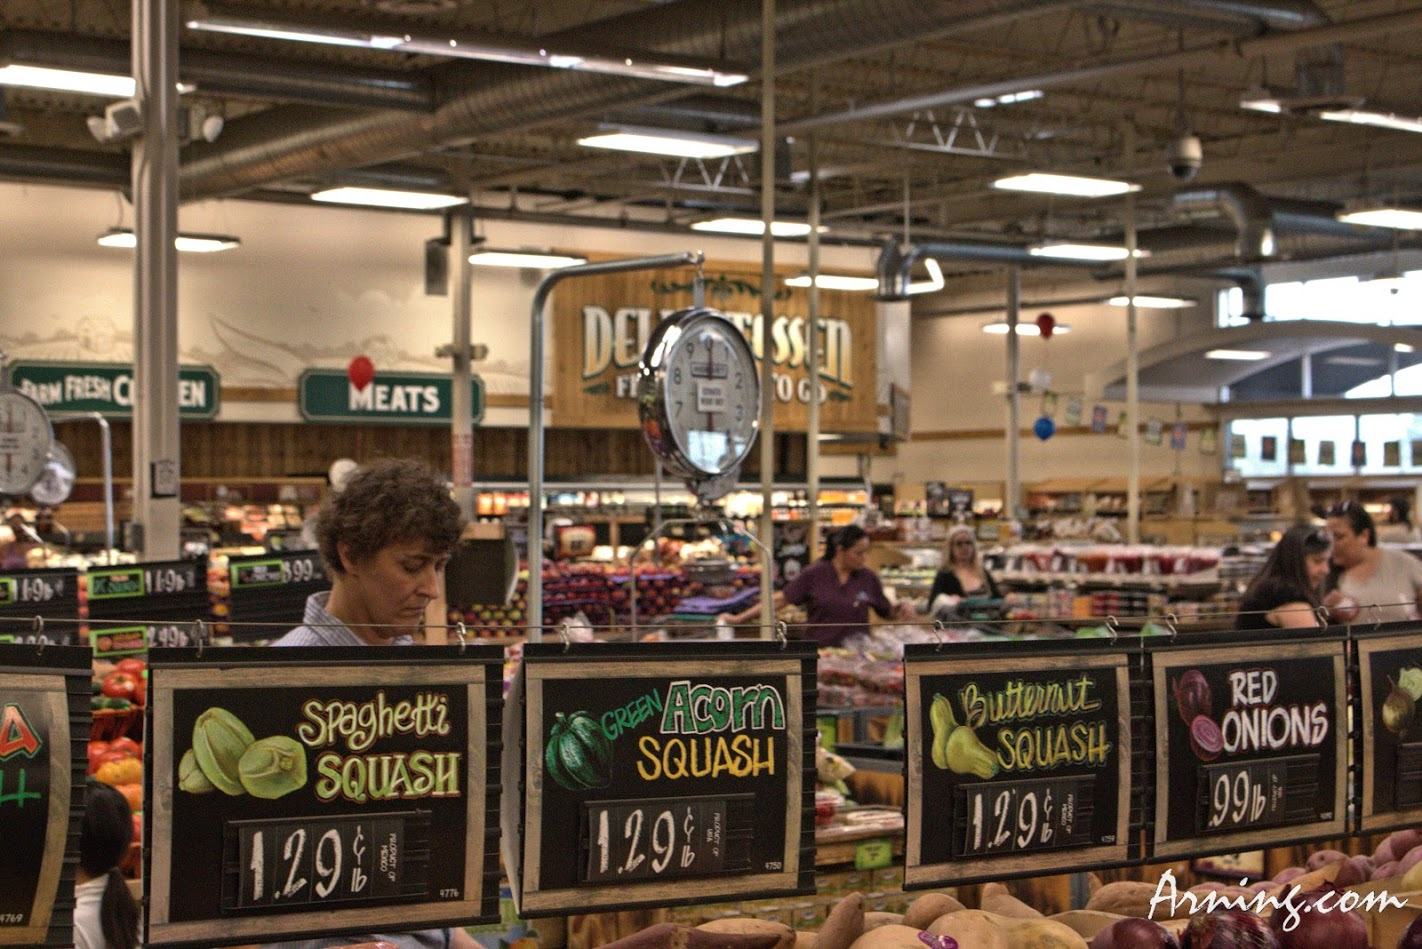 Weekly shopping at Sprouts